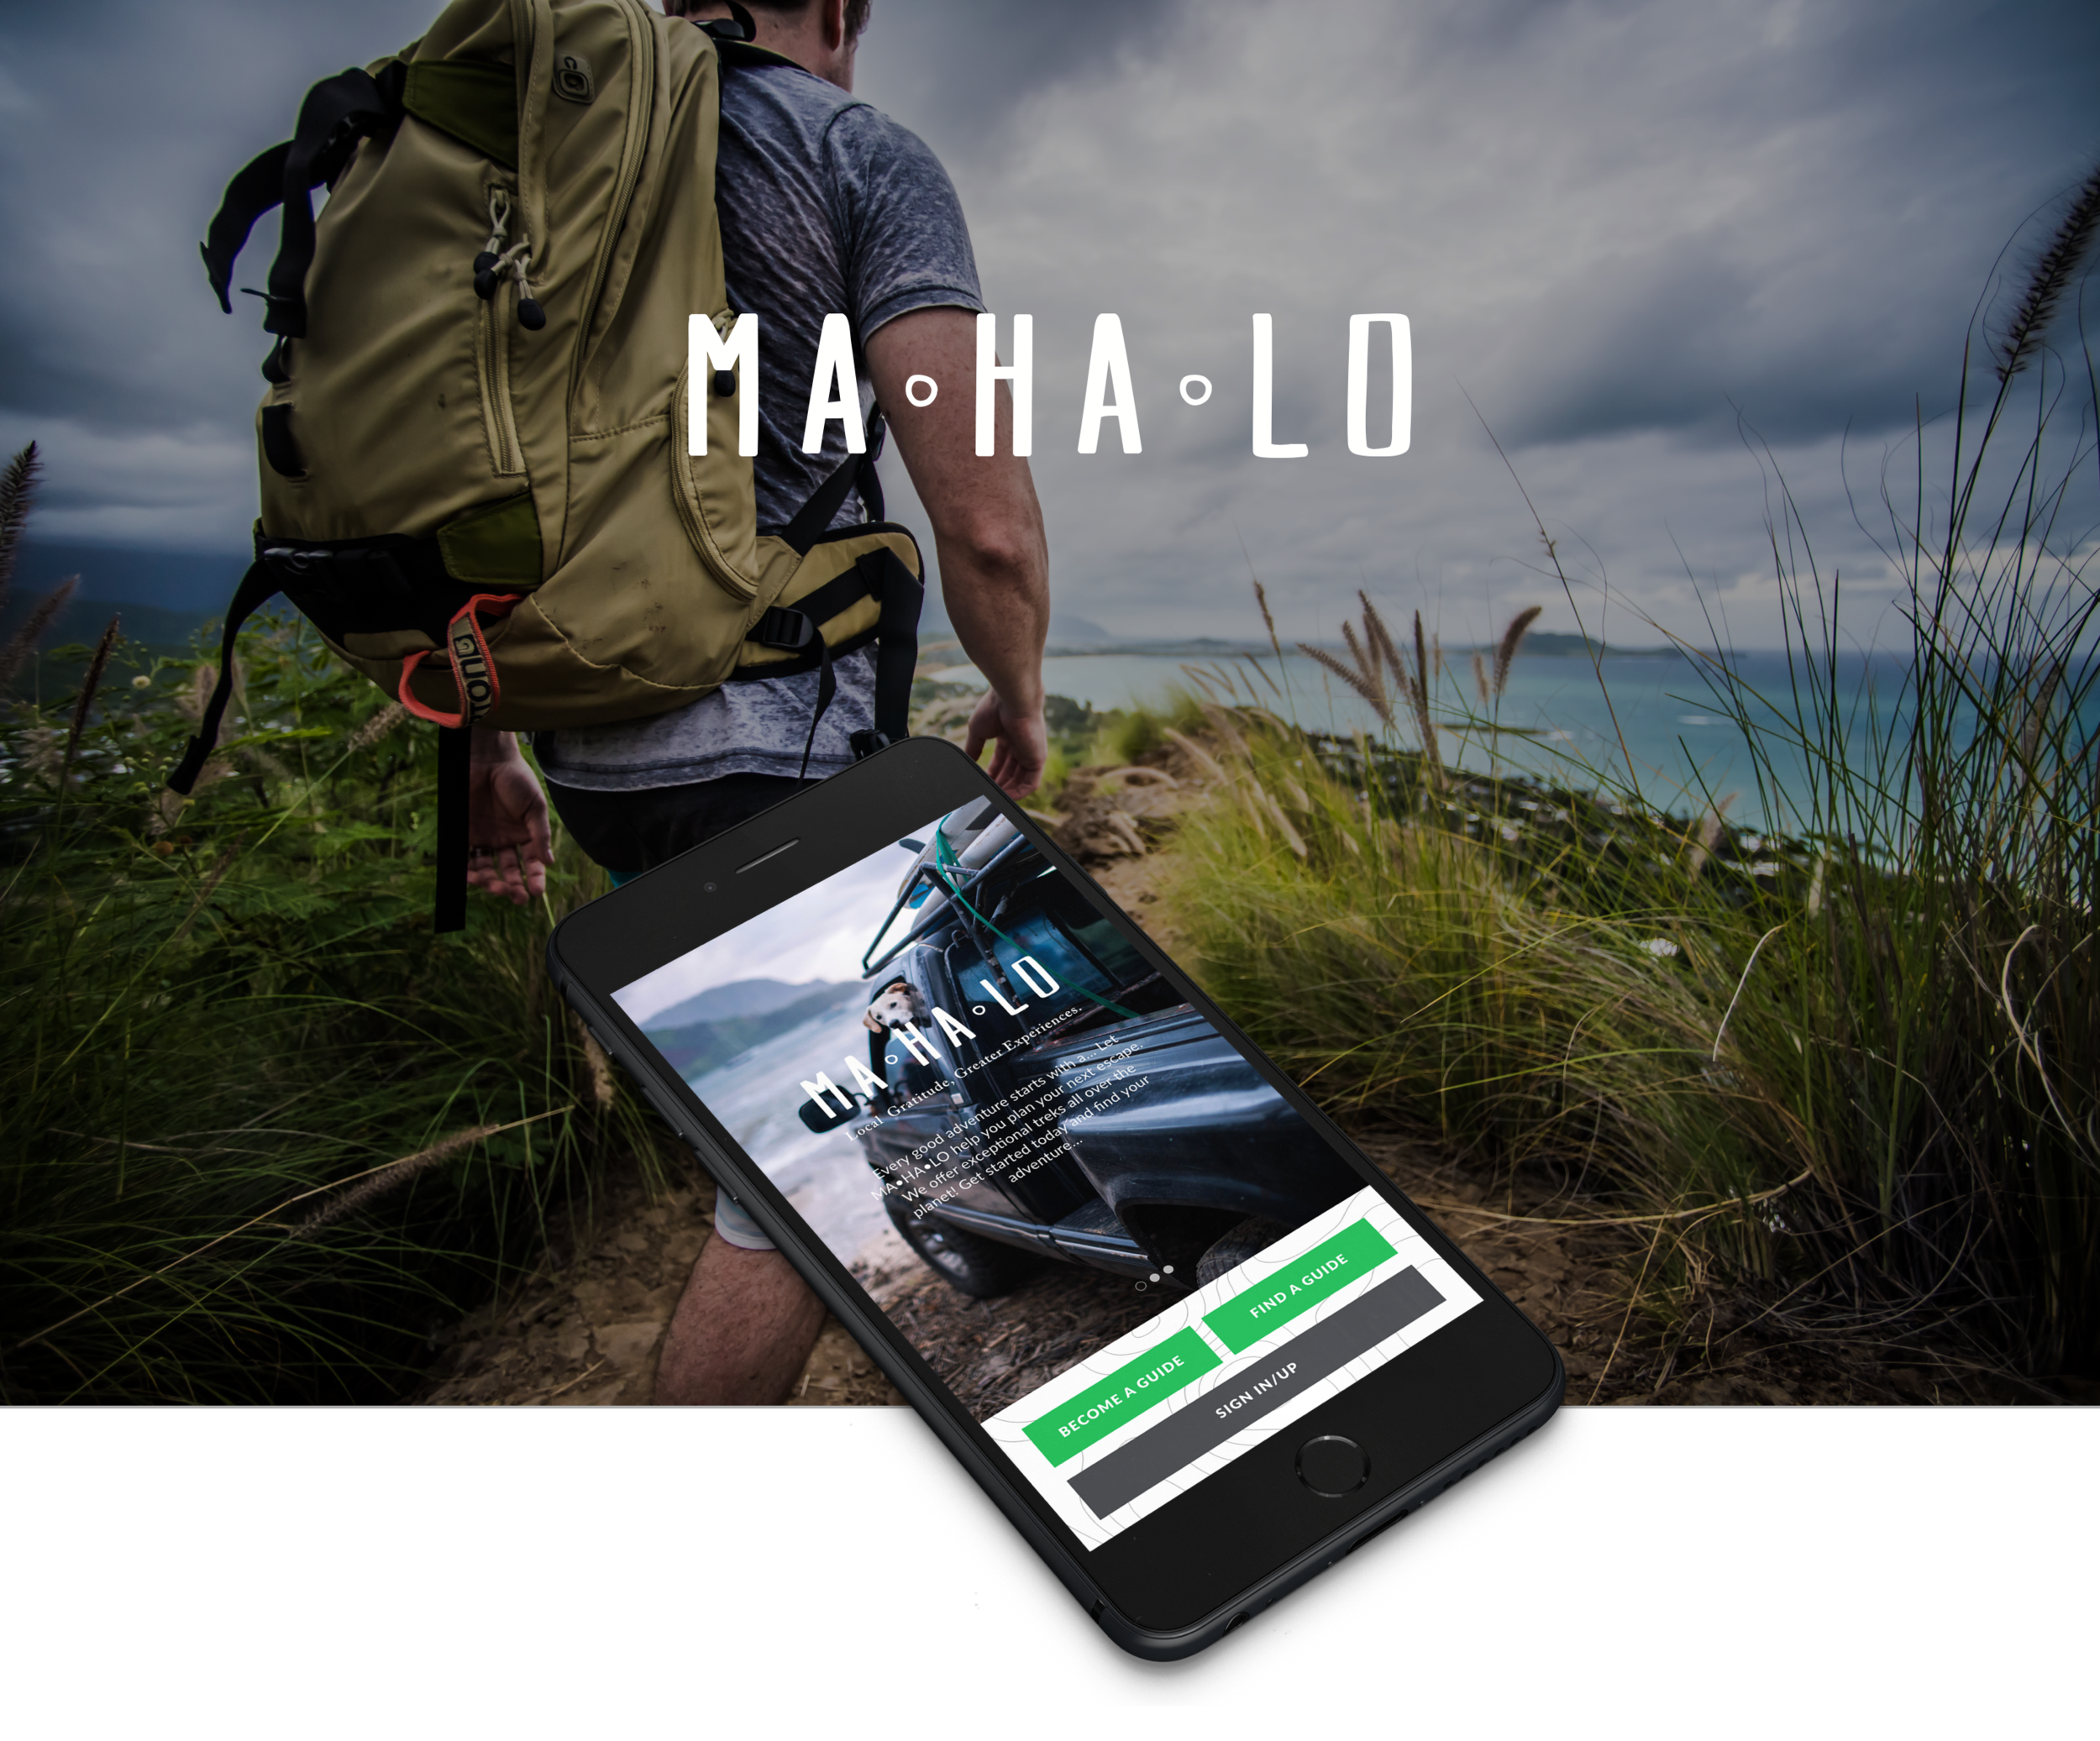 Mahalo-Cover-Image@2x.png